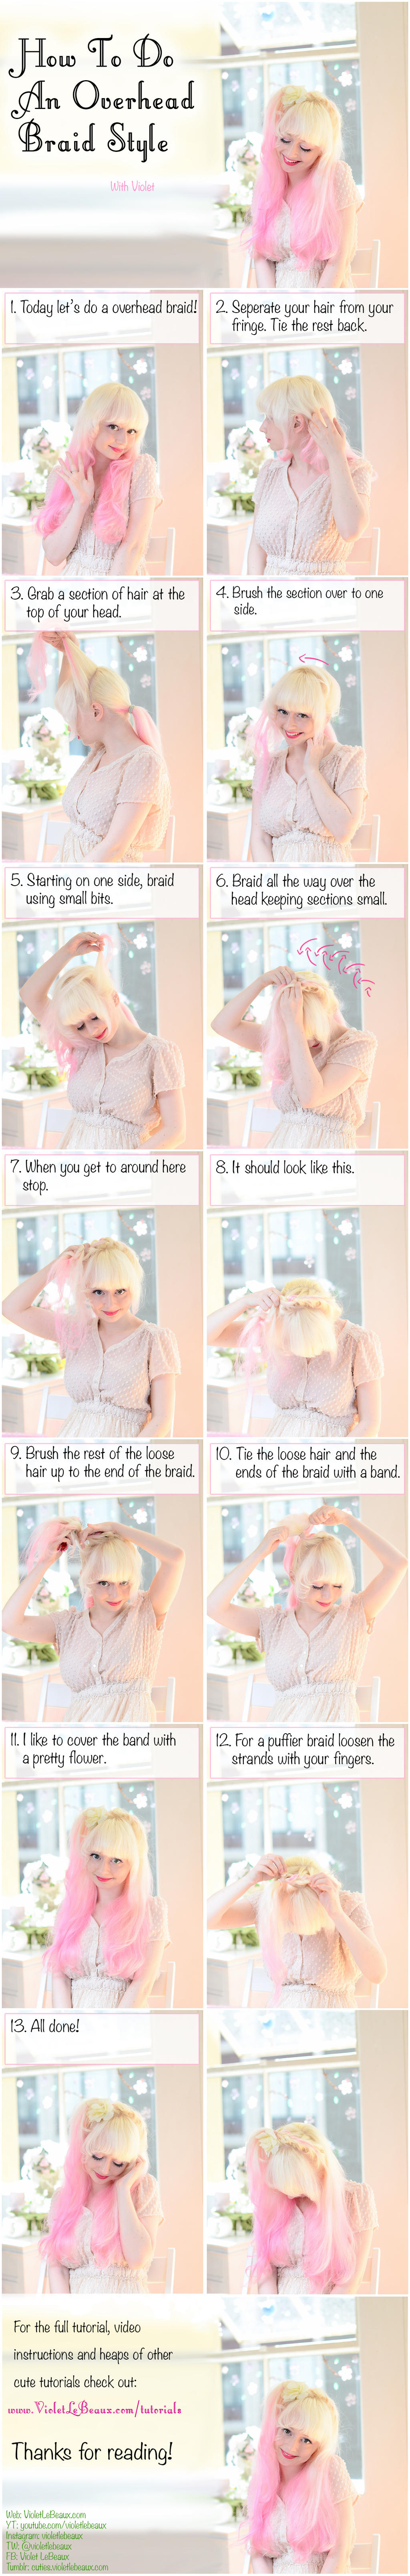 Overhead Braid and Ponytail Hairstyle Tutorial by VioletLeBeaux